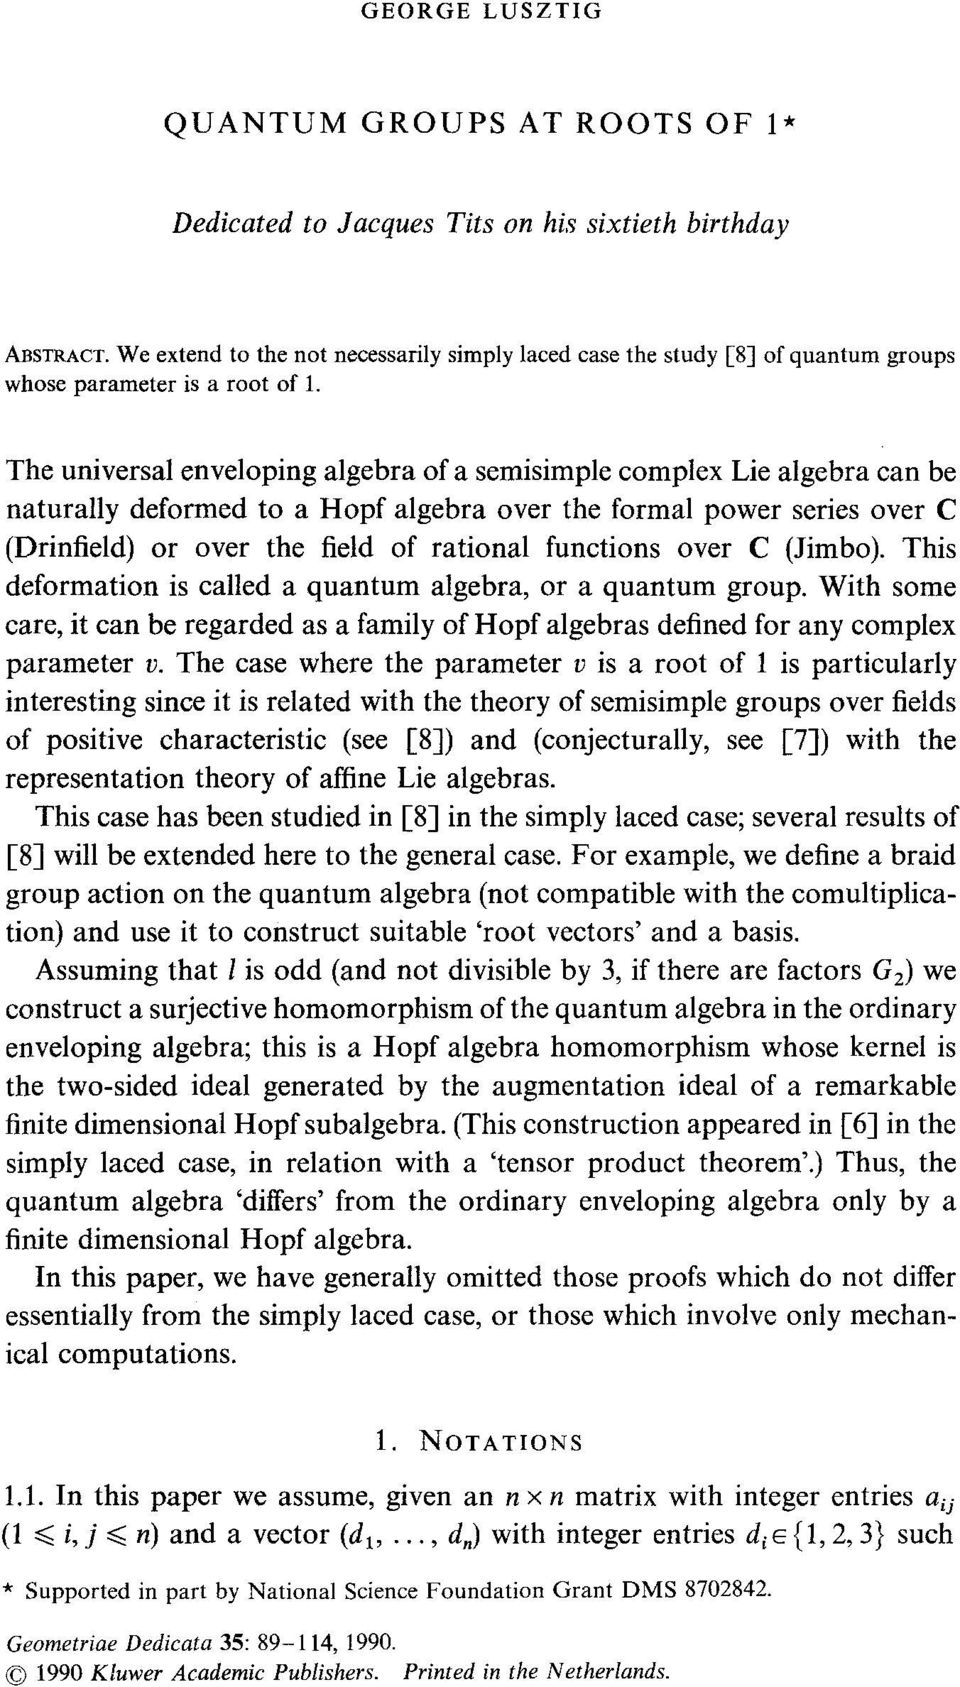 The universal enveloping algebra of a semisimple complex Lie algebra can be naturally deformed to a Hopf algebra over the formal power series over C (Drinfield) or over the field of rational